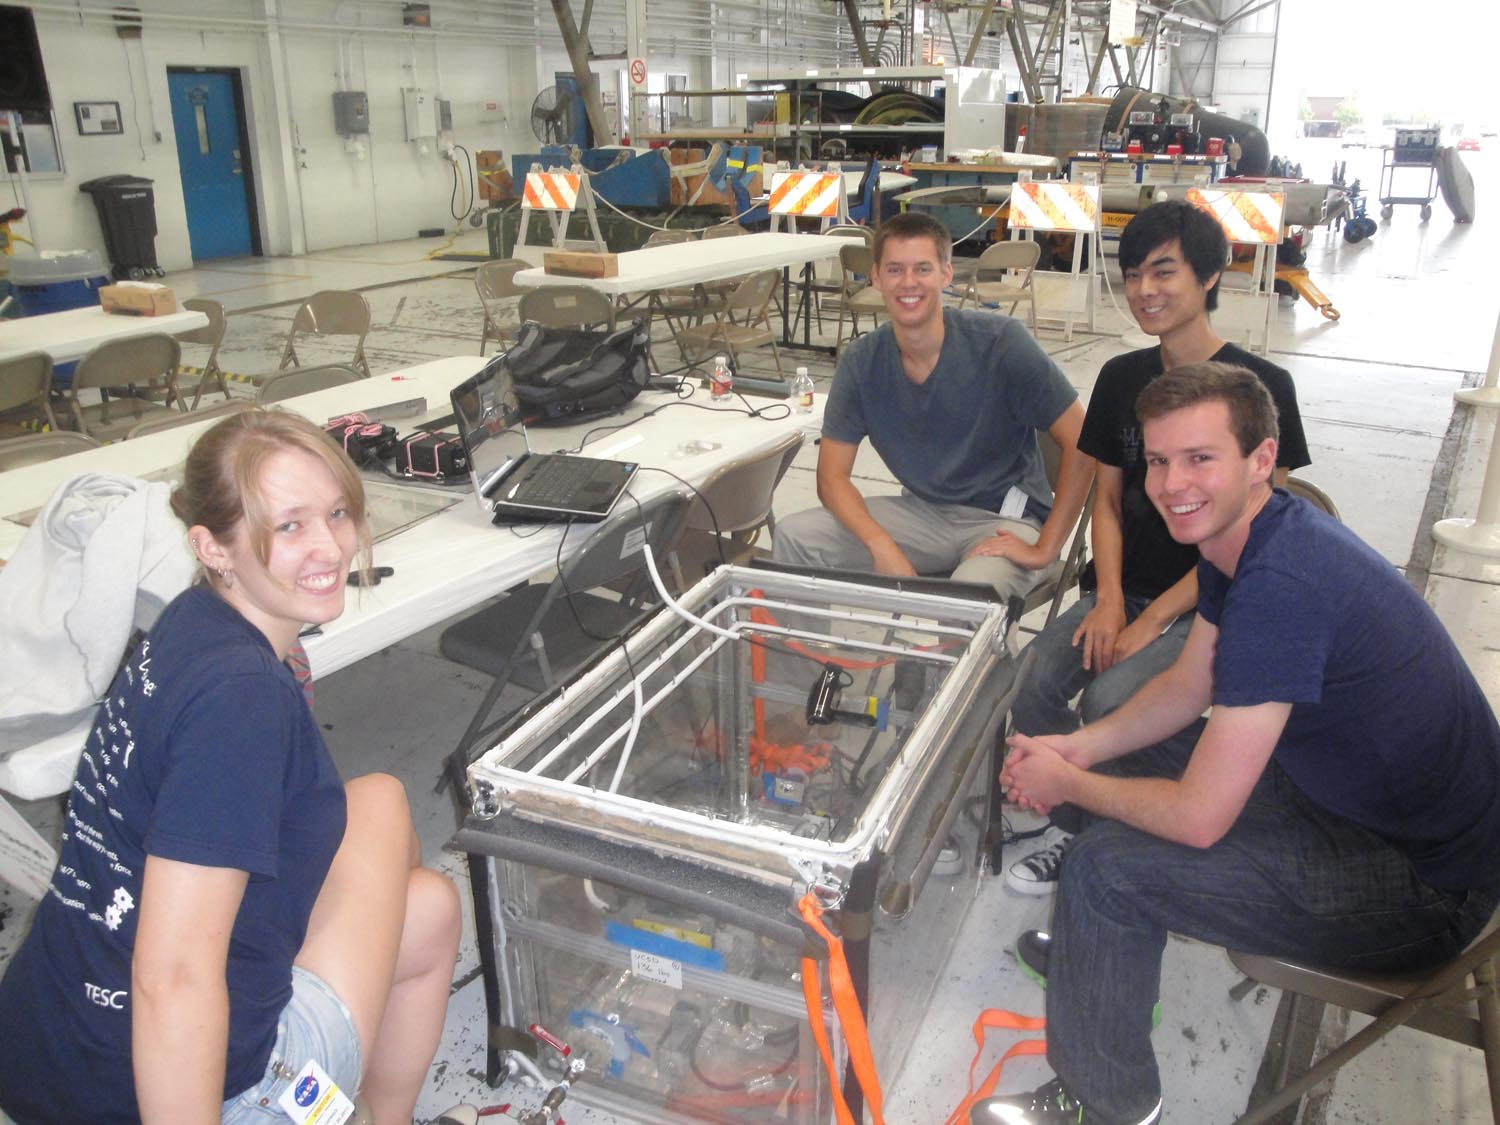 UCSD Microgravity Team: Waiting for Takeoff